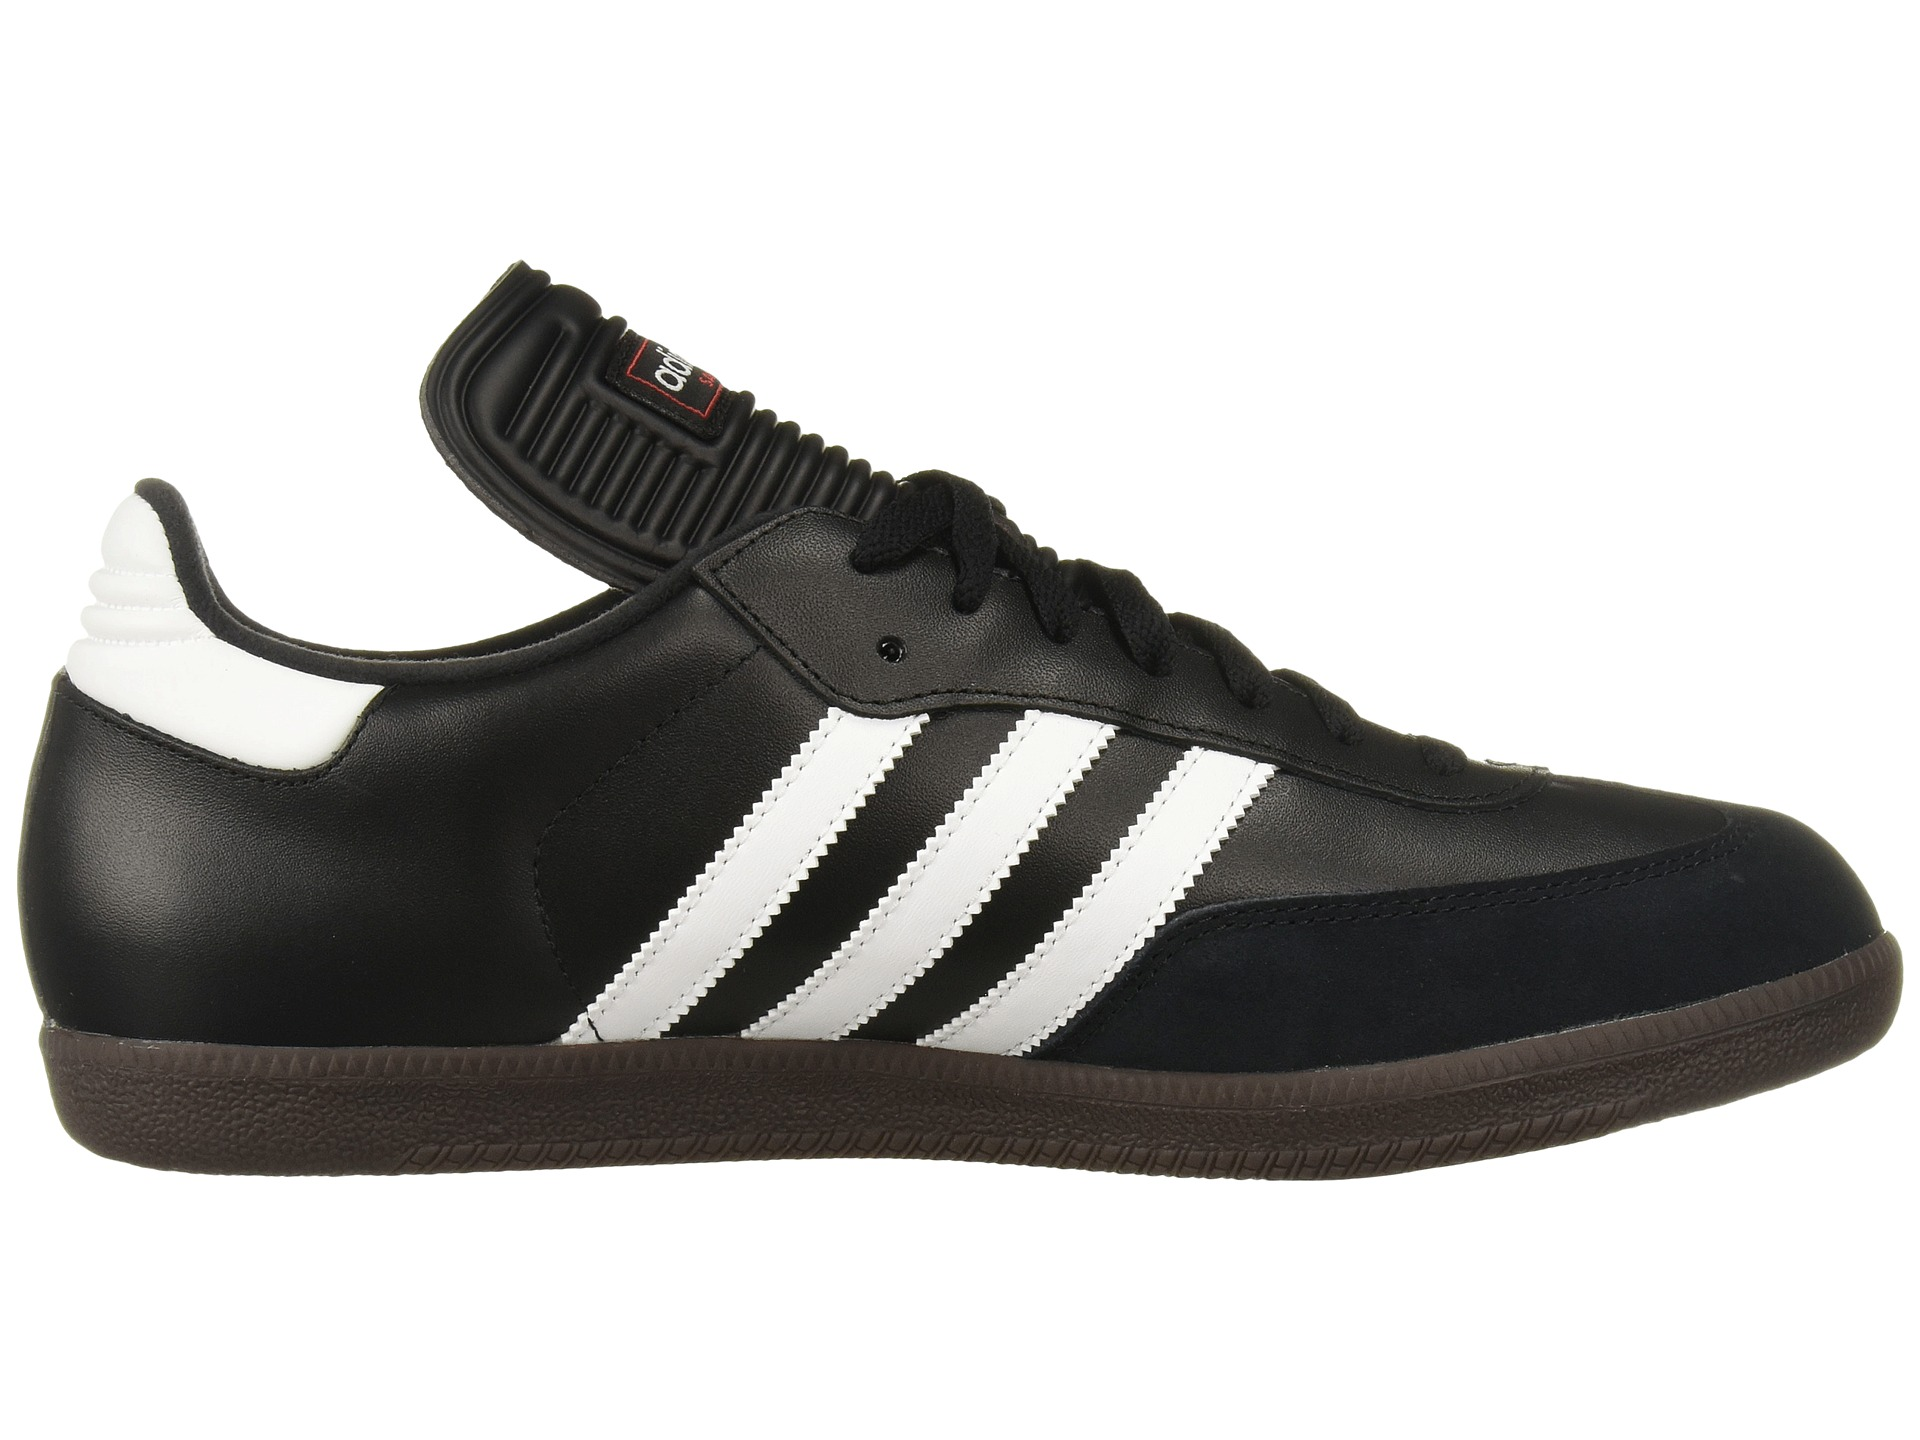 Find Old Adidas Shoes